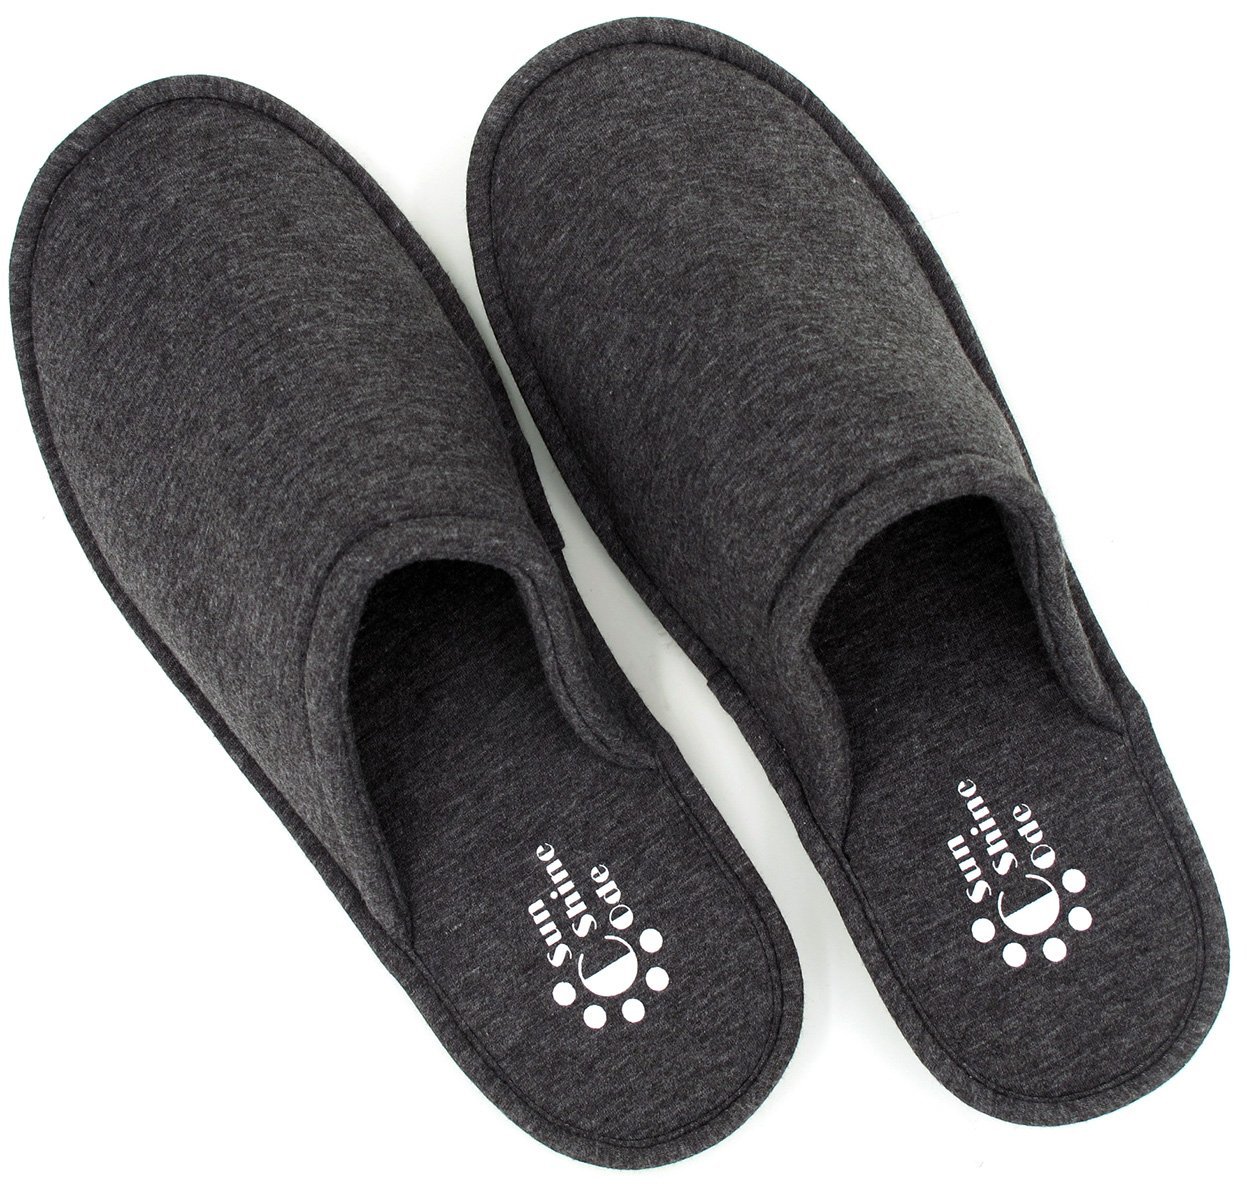 Sunshine Code Women's Memory Foam Cotton Washable Slippers with Matching Travel Bag for Home Hotel Spa Bedroom, M, Black